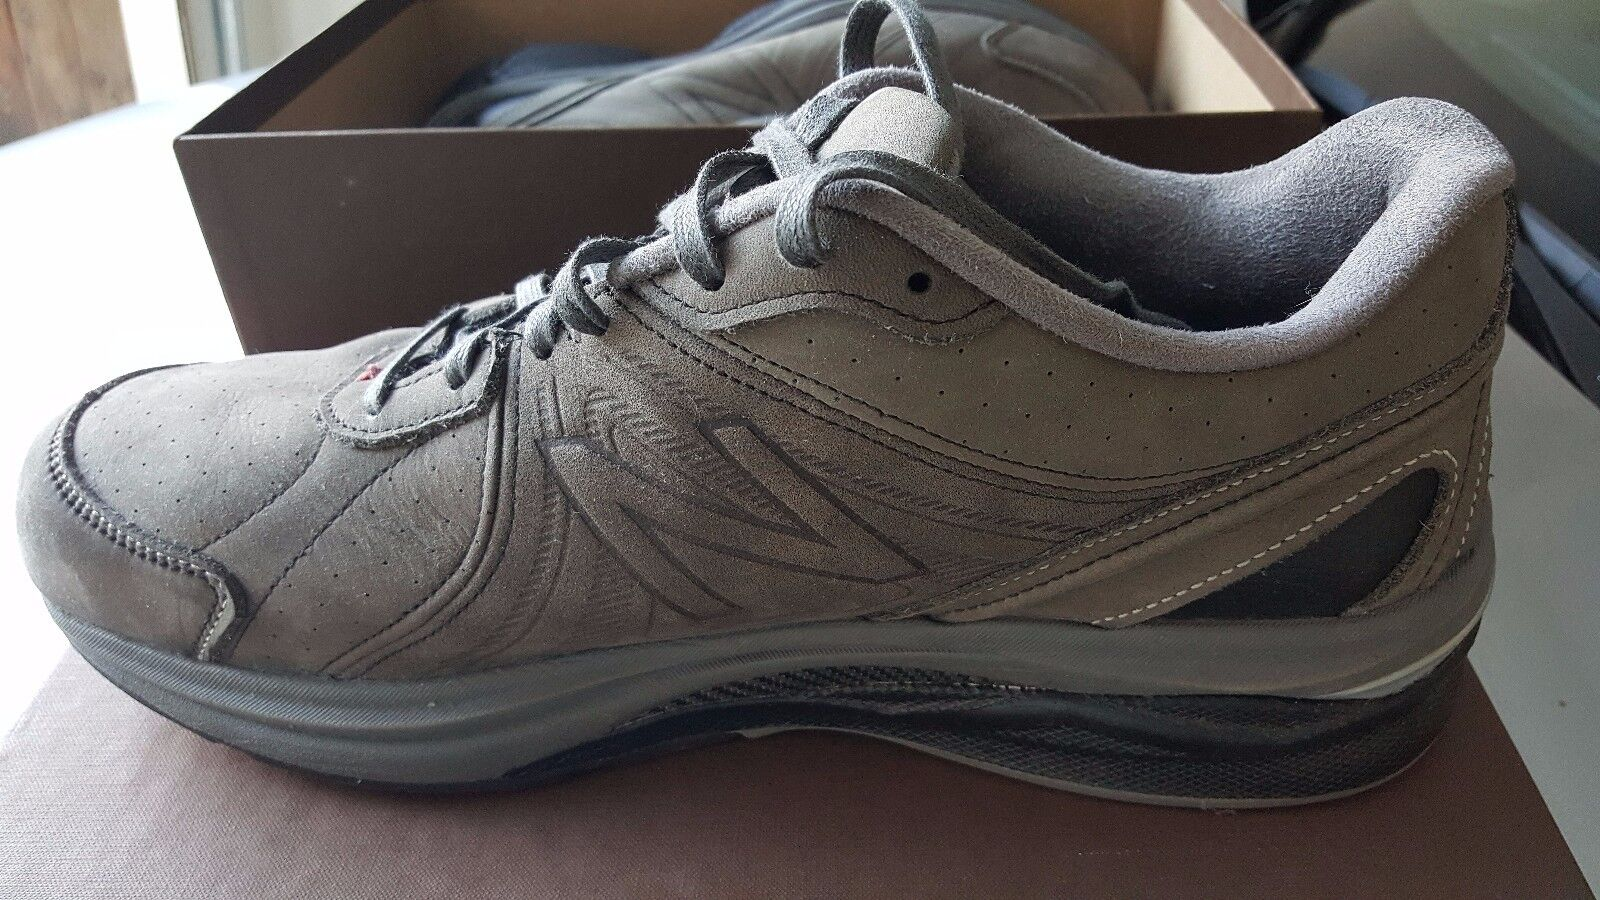 New Balance Mens Tennis Shoes.  Running Course  Size 13 D.   Barely Used